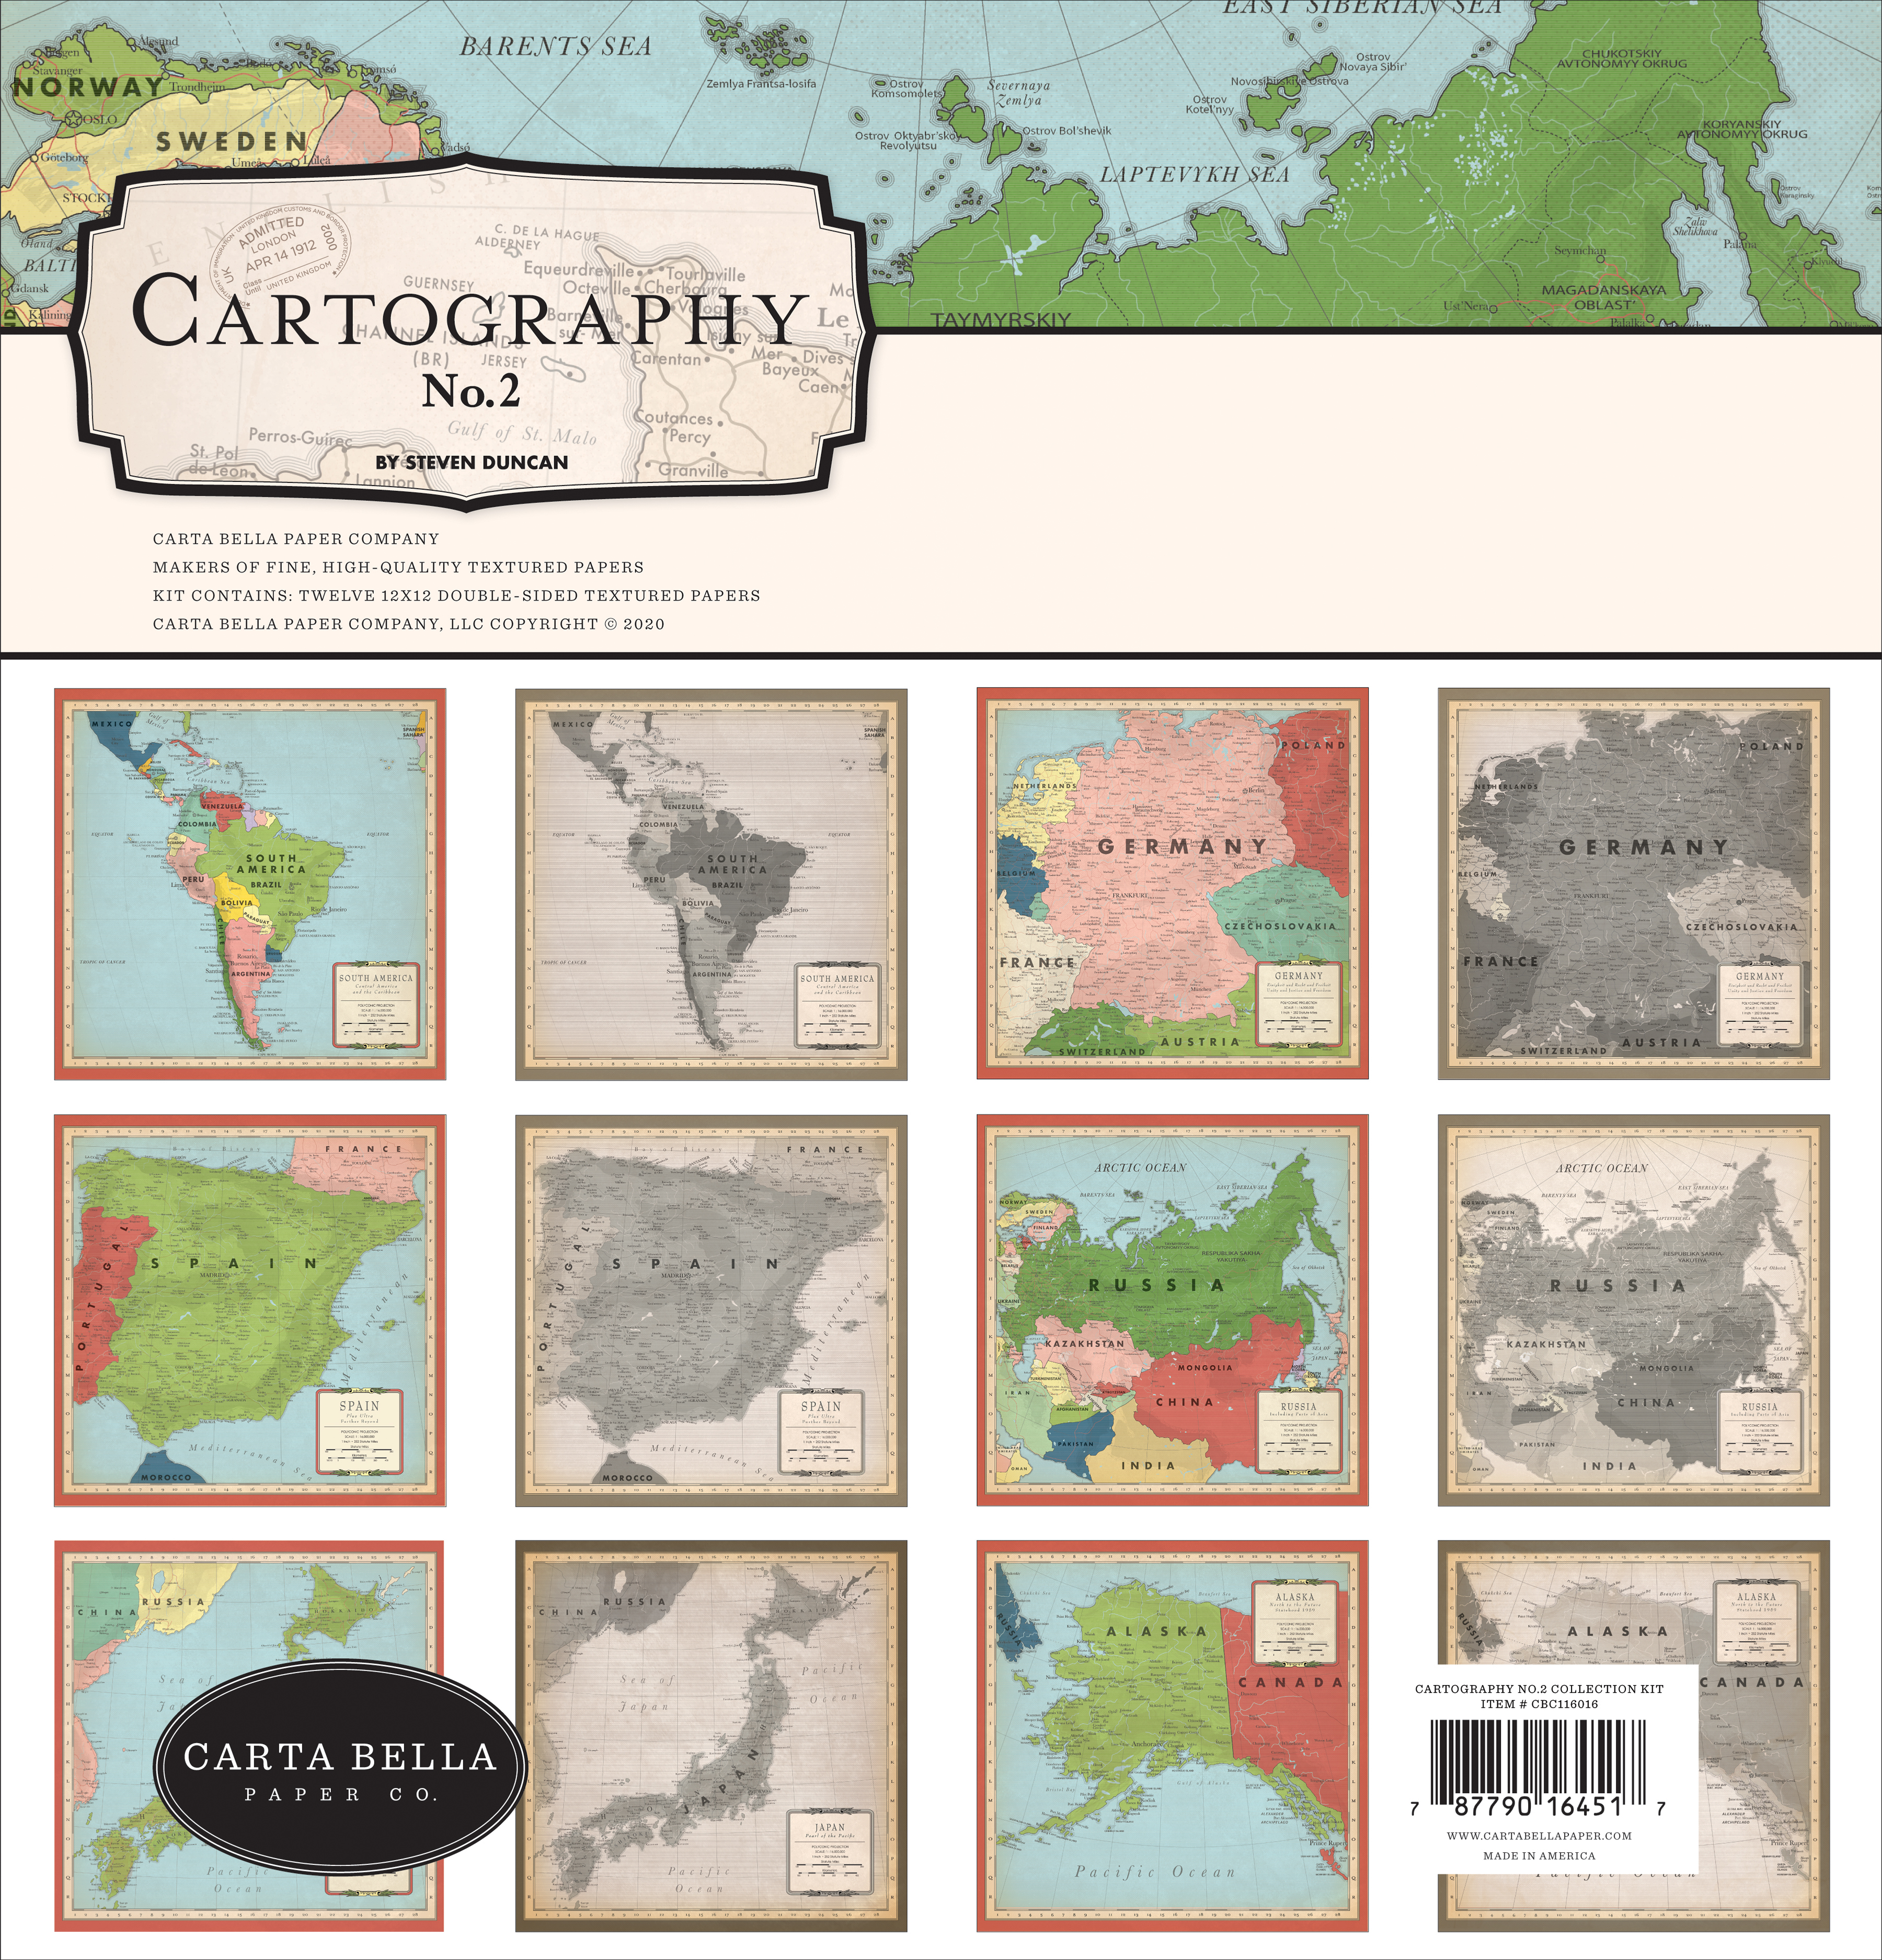 Cartography No. 2 Collection Kit